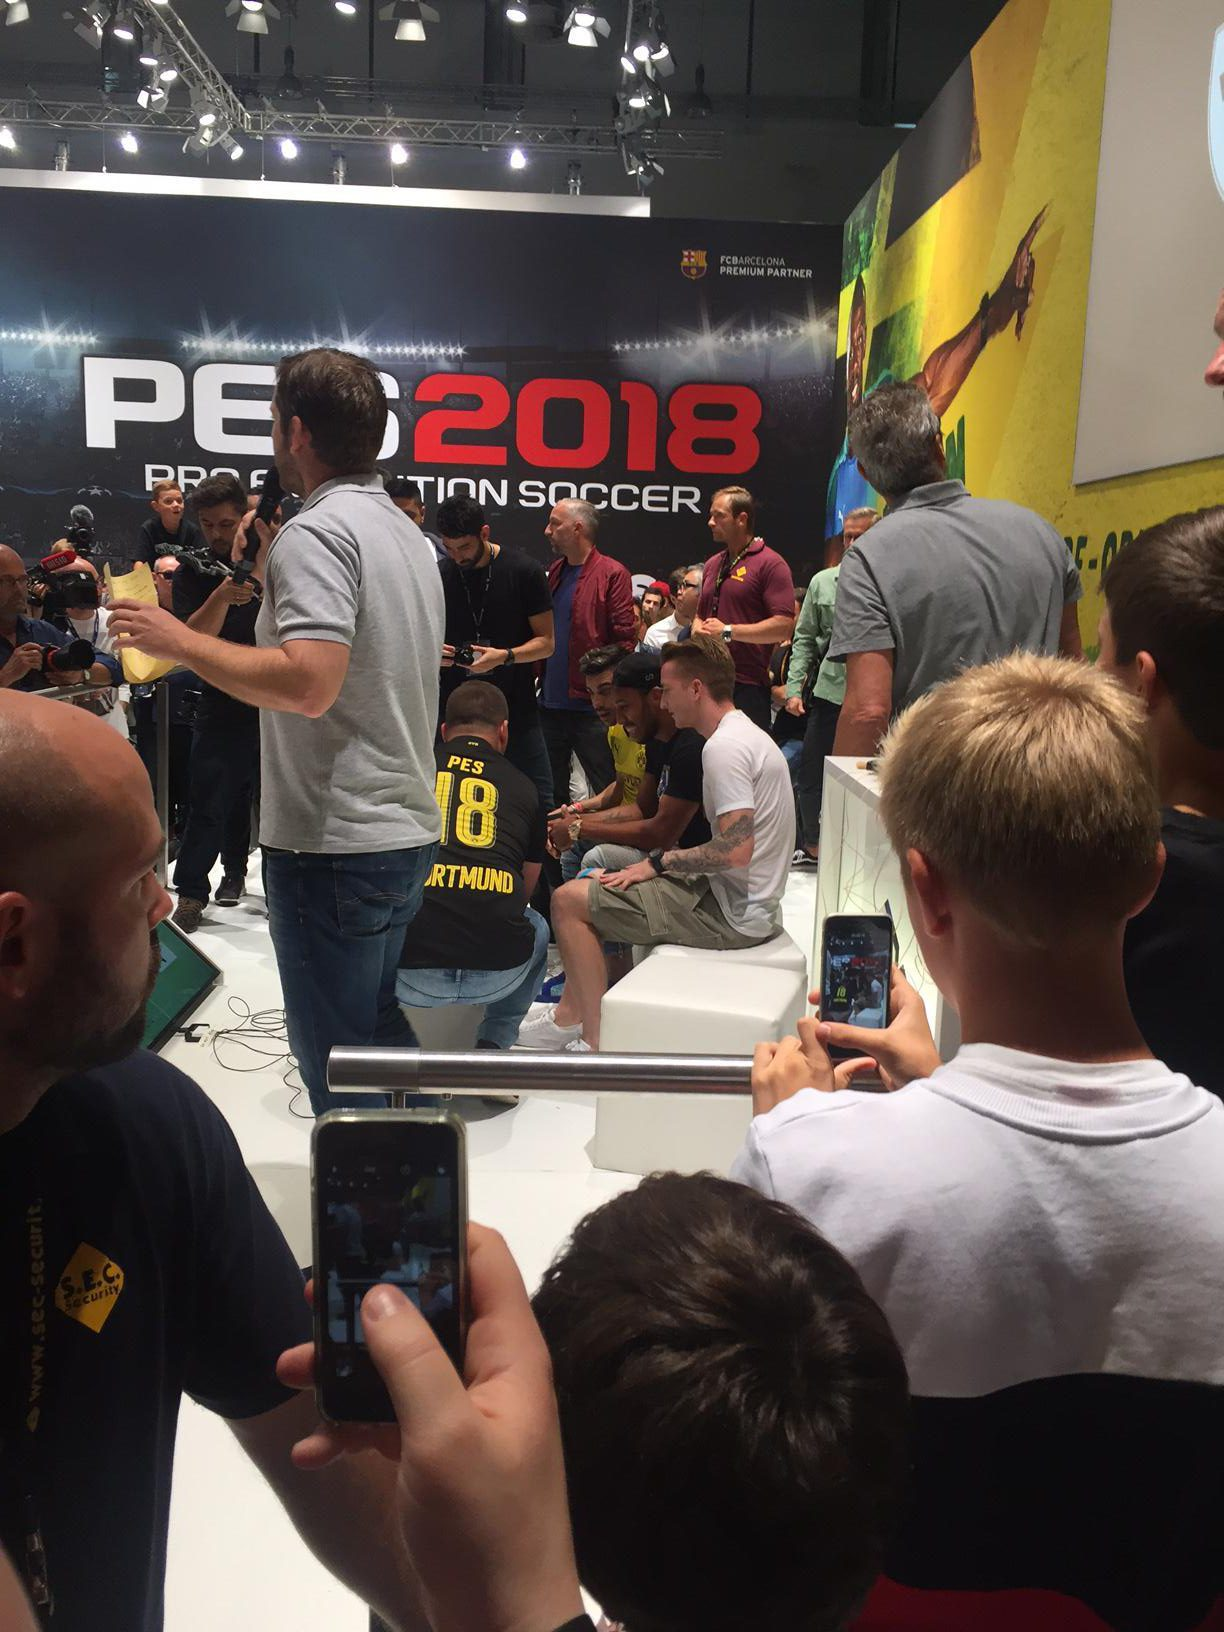 FIFA 17 cover star Reus and his teammate Aubameyang play PES in full view of EA